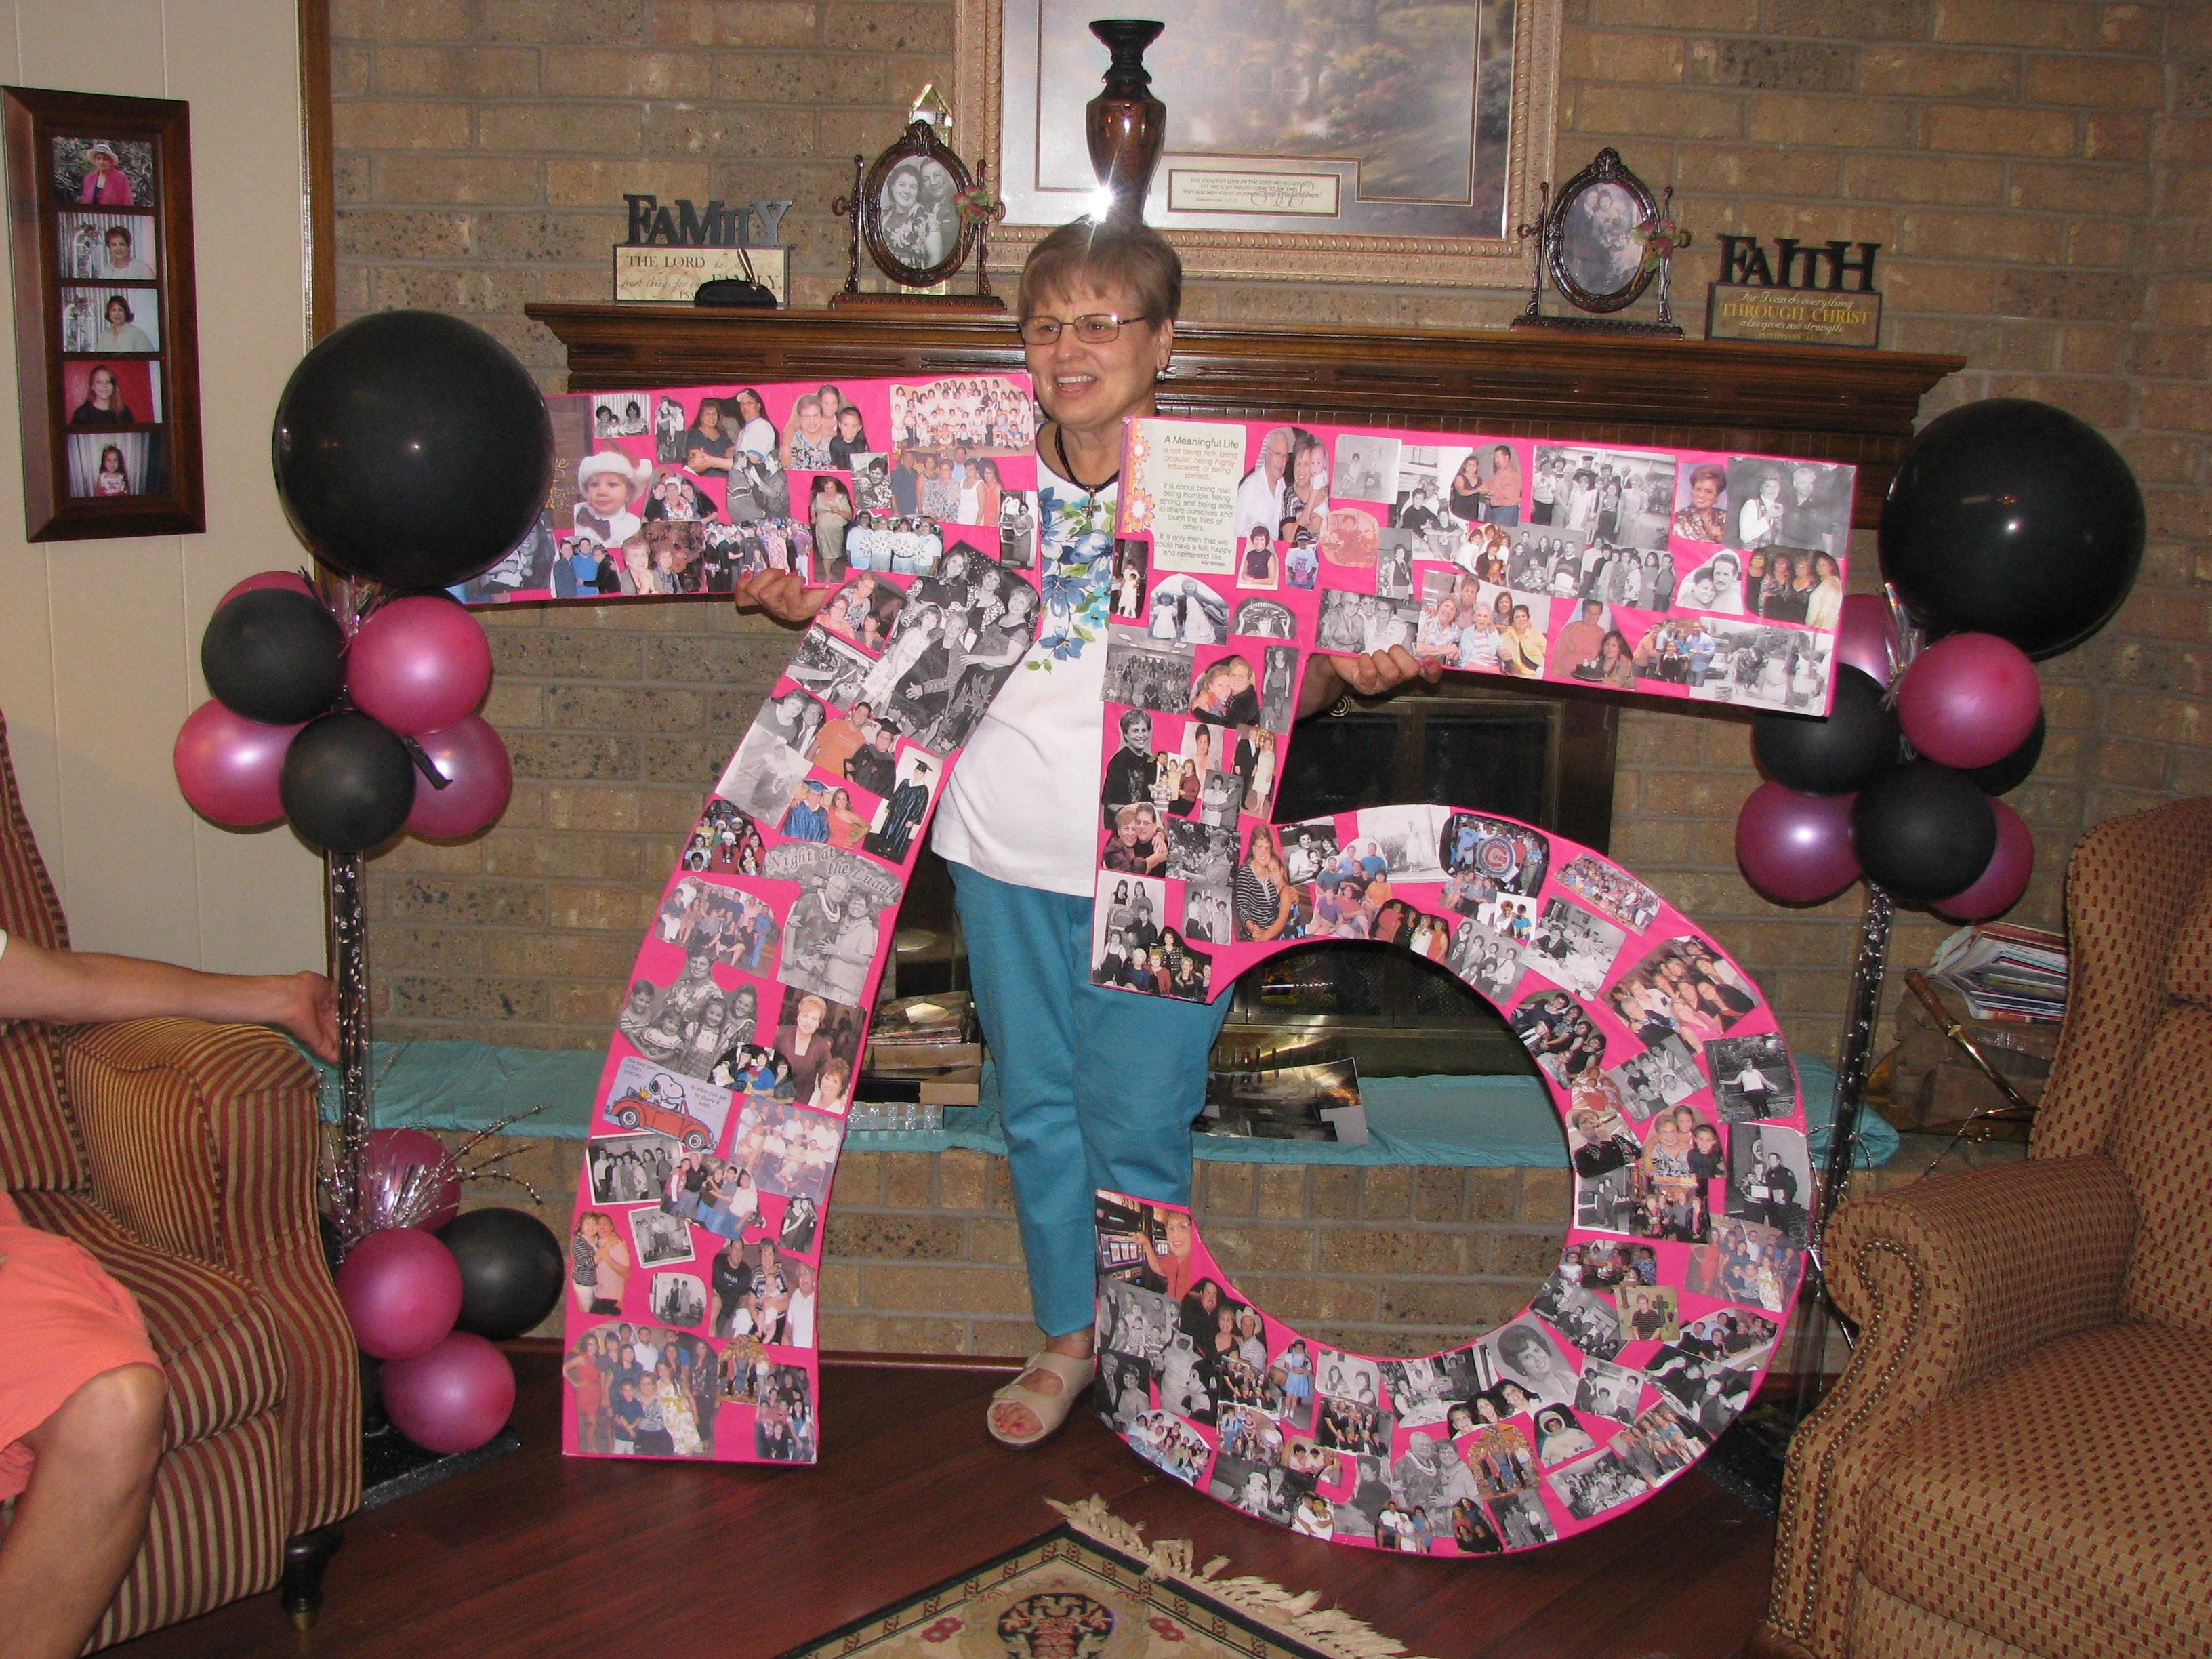 Poster Board For Mother's 75th Birthday Party Worked Out